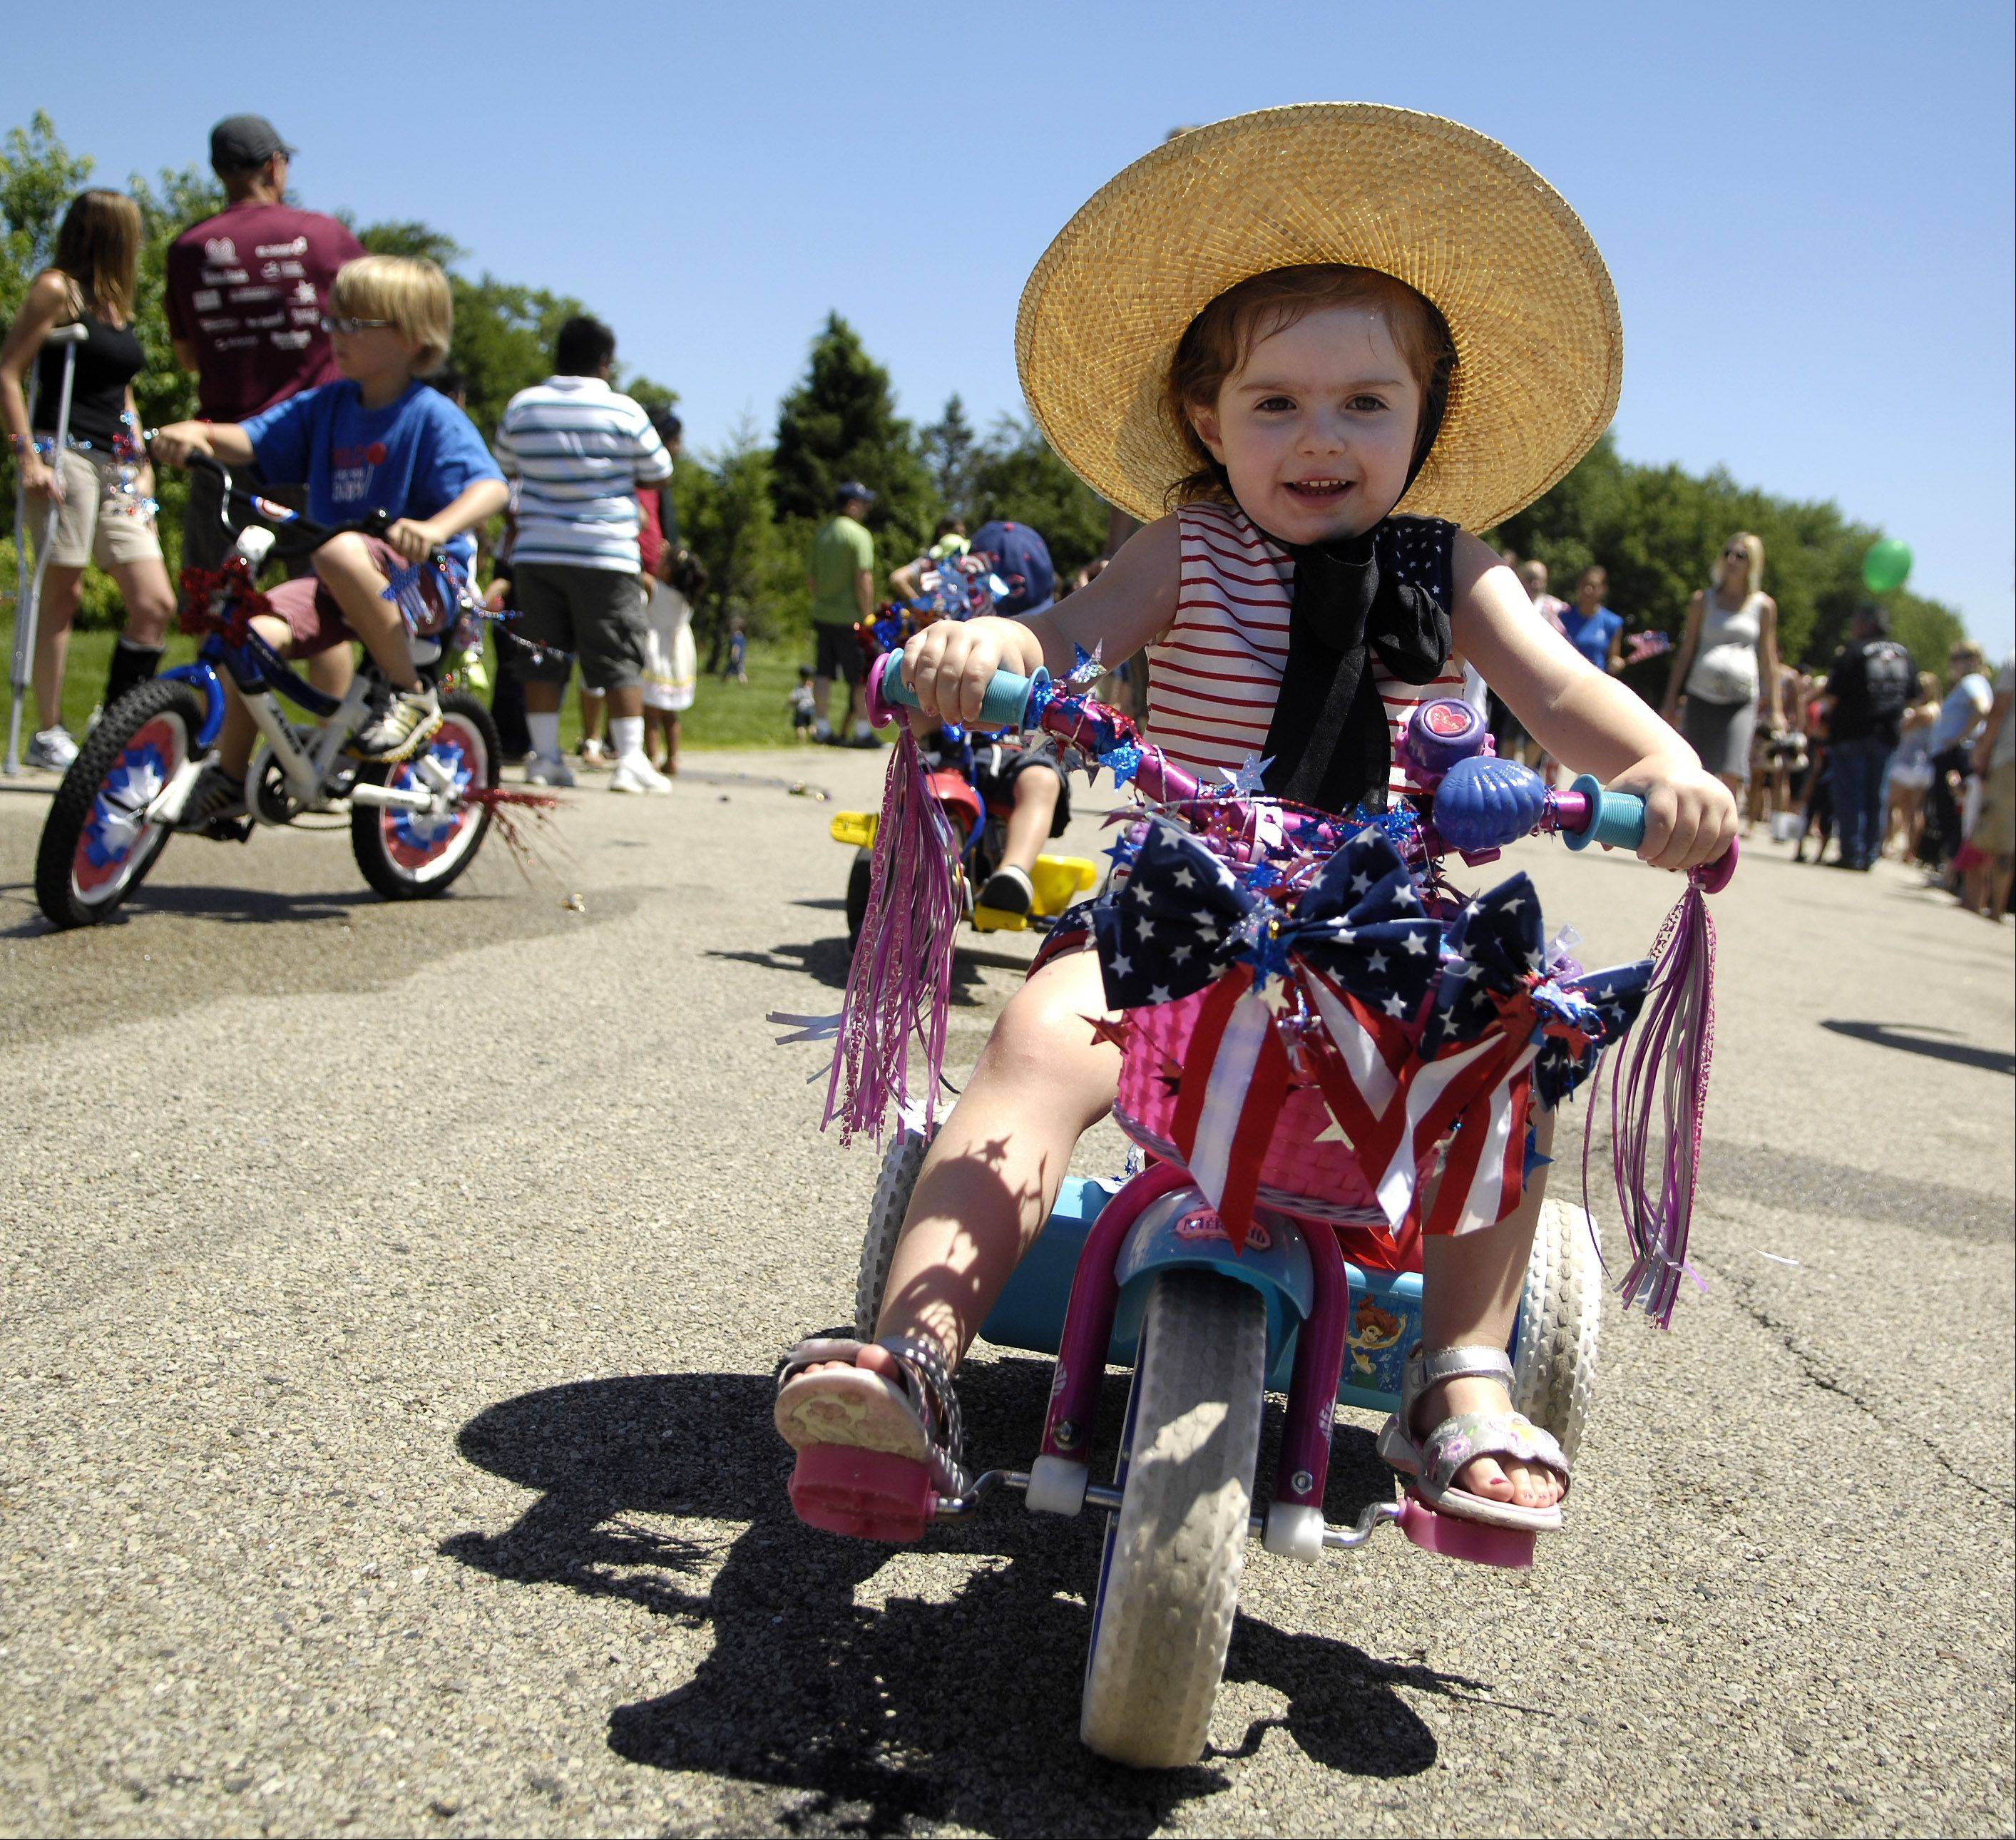 3-year-old Chloe Coffey of Lake in the Hills rides her decorated trike along the route during Sleepy Hollow's Fourth of July parade Monday. Her grandparents live in nearby West Dundee.